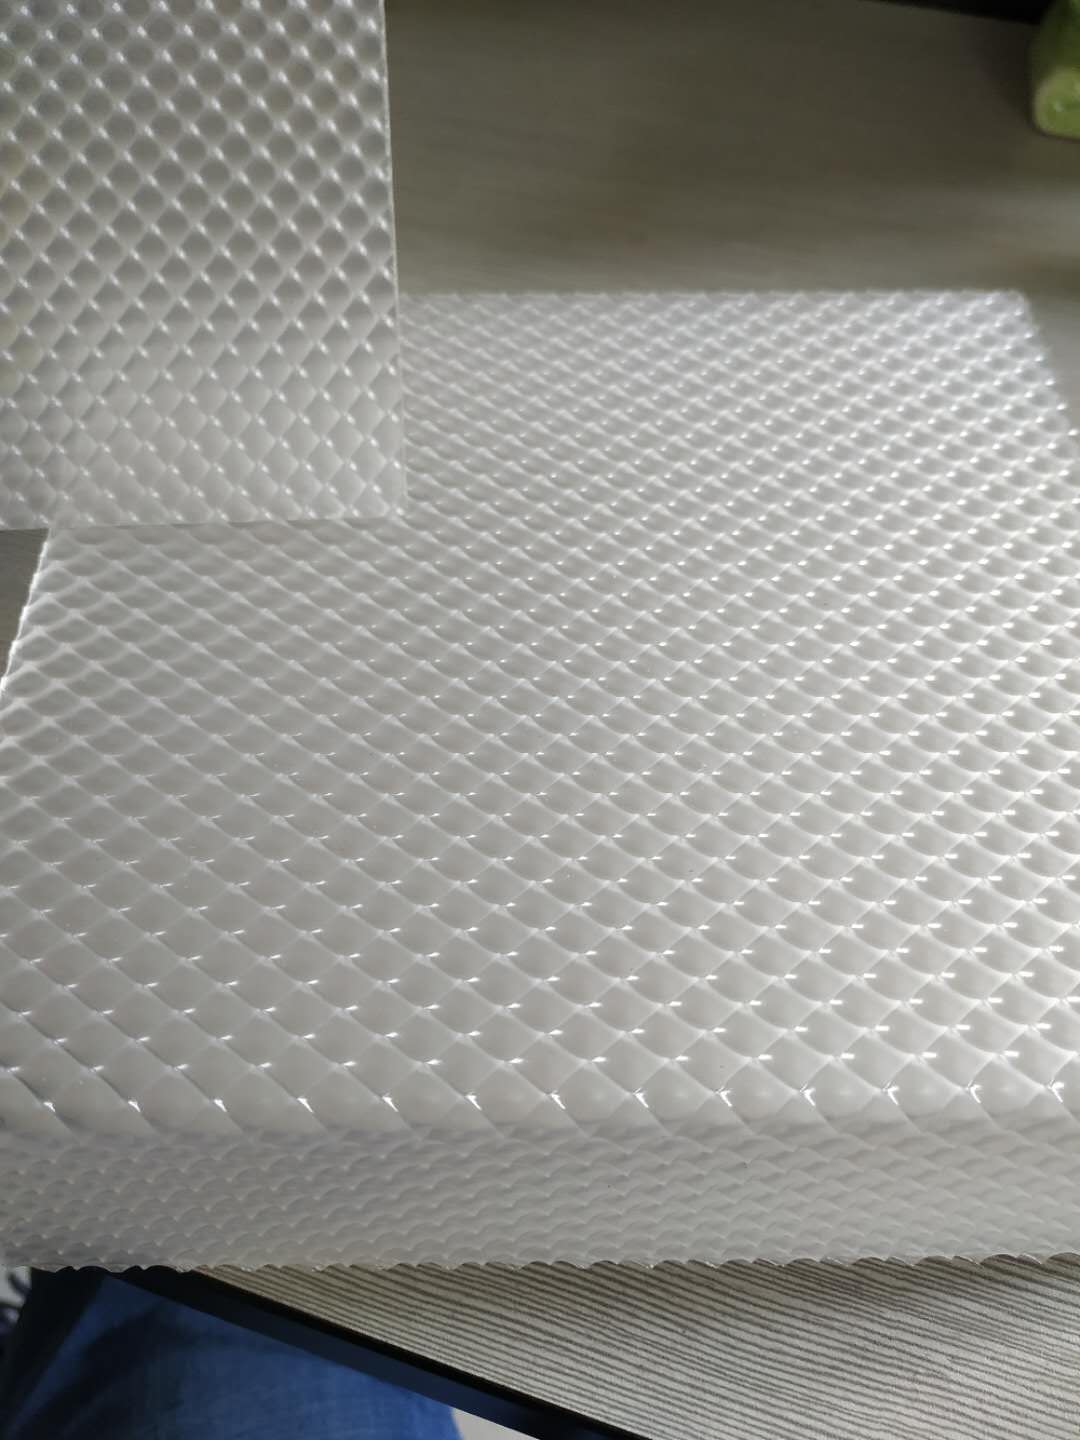 Factory wholesale  prismatic led light diffuser sheet 1220*2440mm for LED panel lights lampshade / cover 1mm to 5mm thick